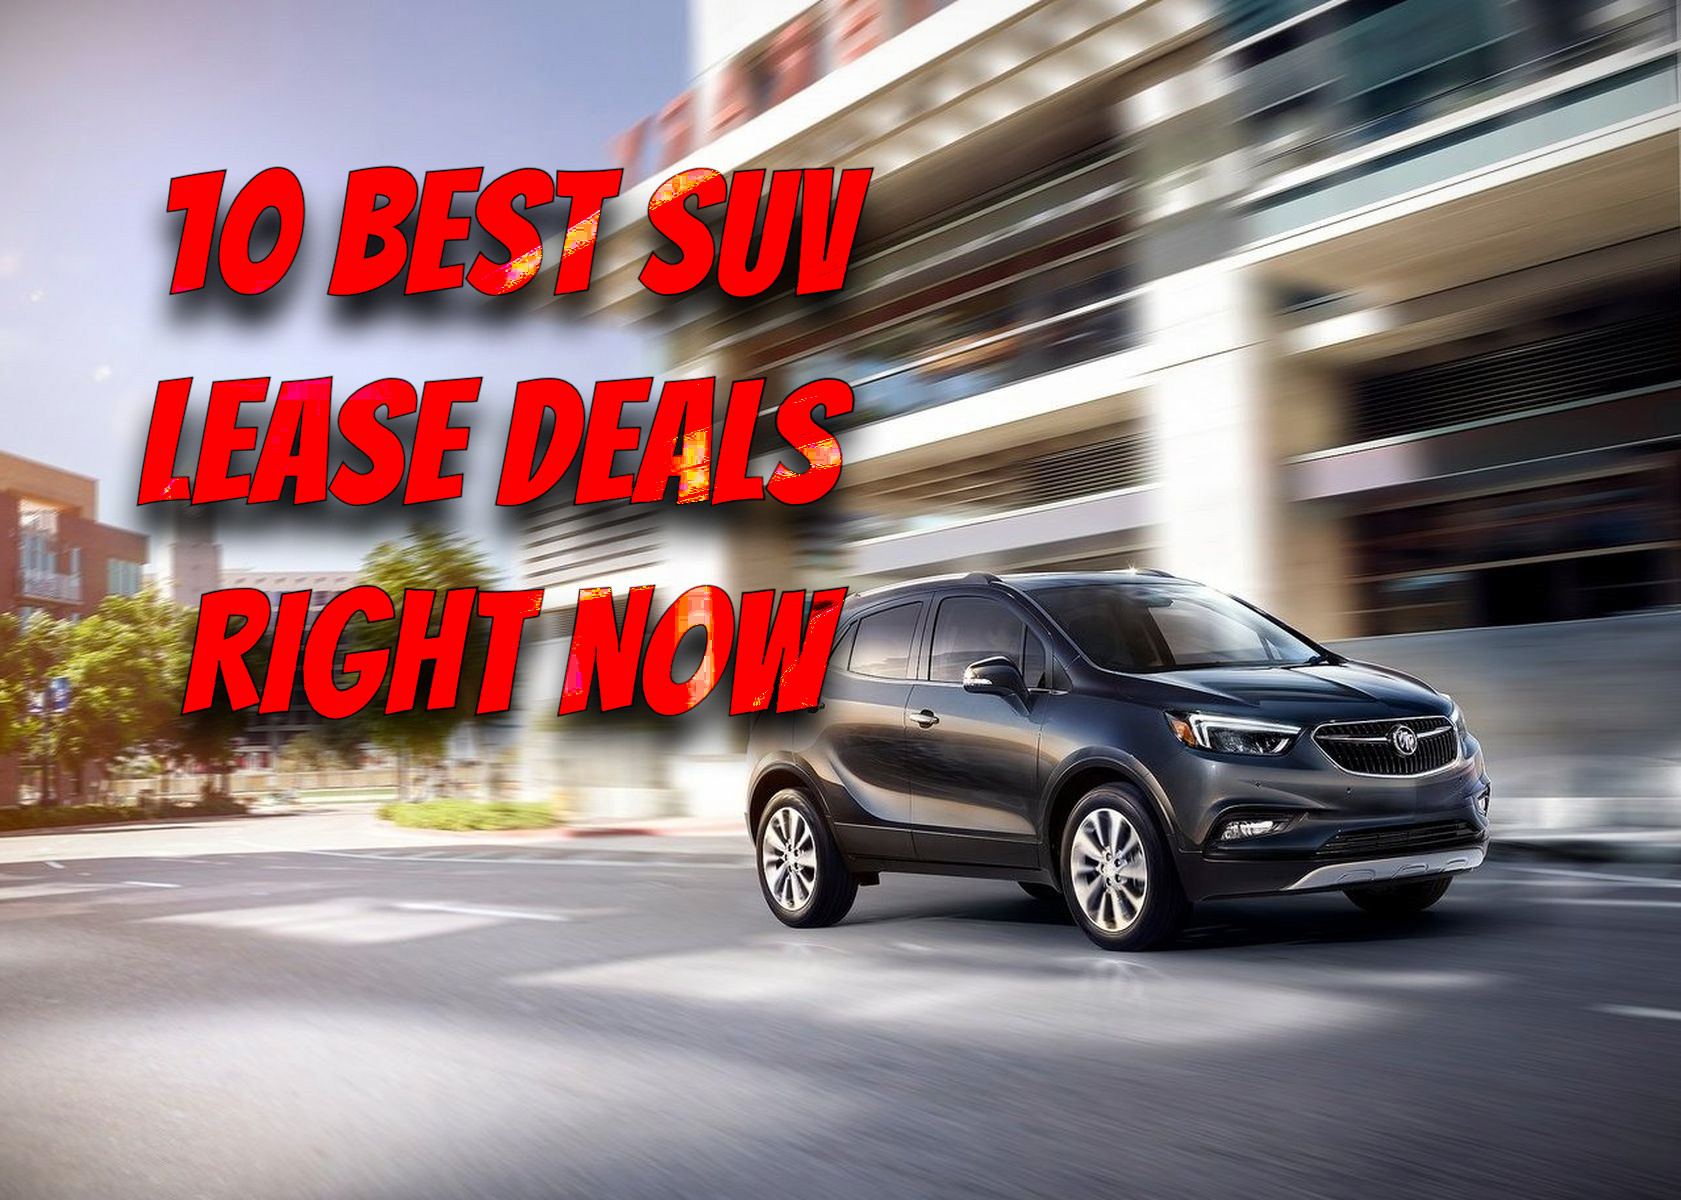 11 Best Suv Lease Deals Right Now Most Affordable Crossover In 2021 Adorecar Com